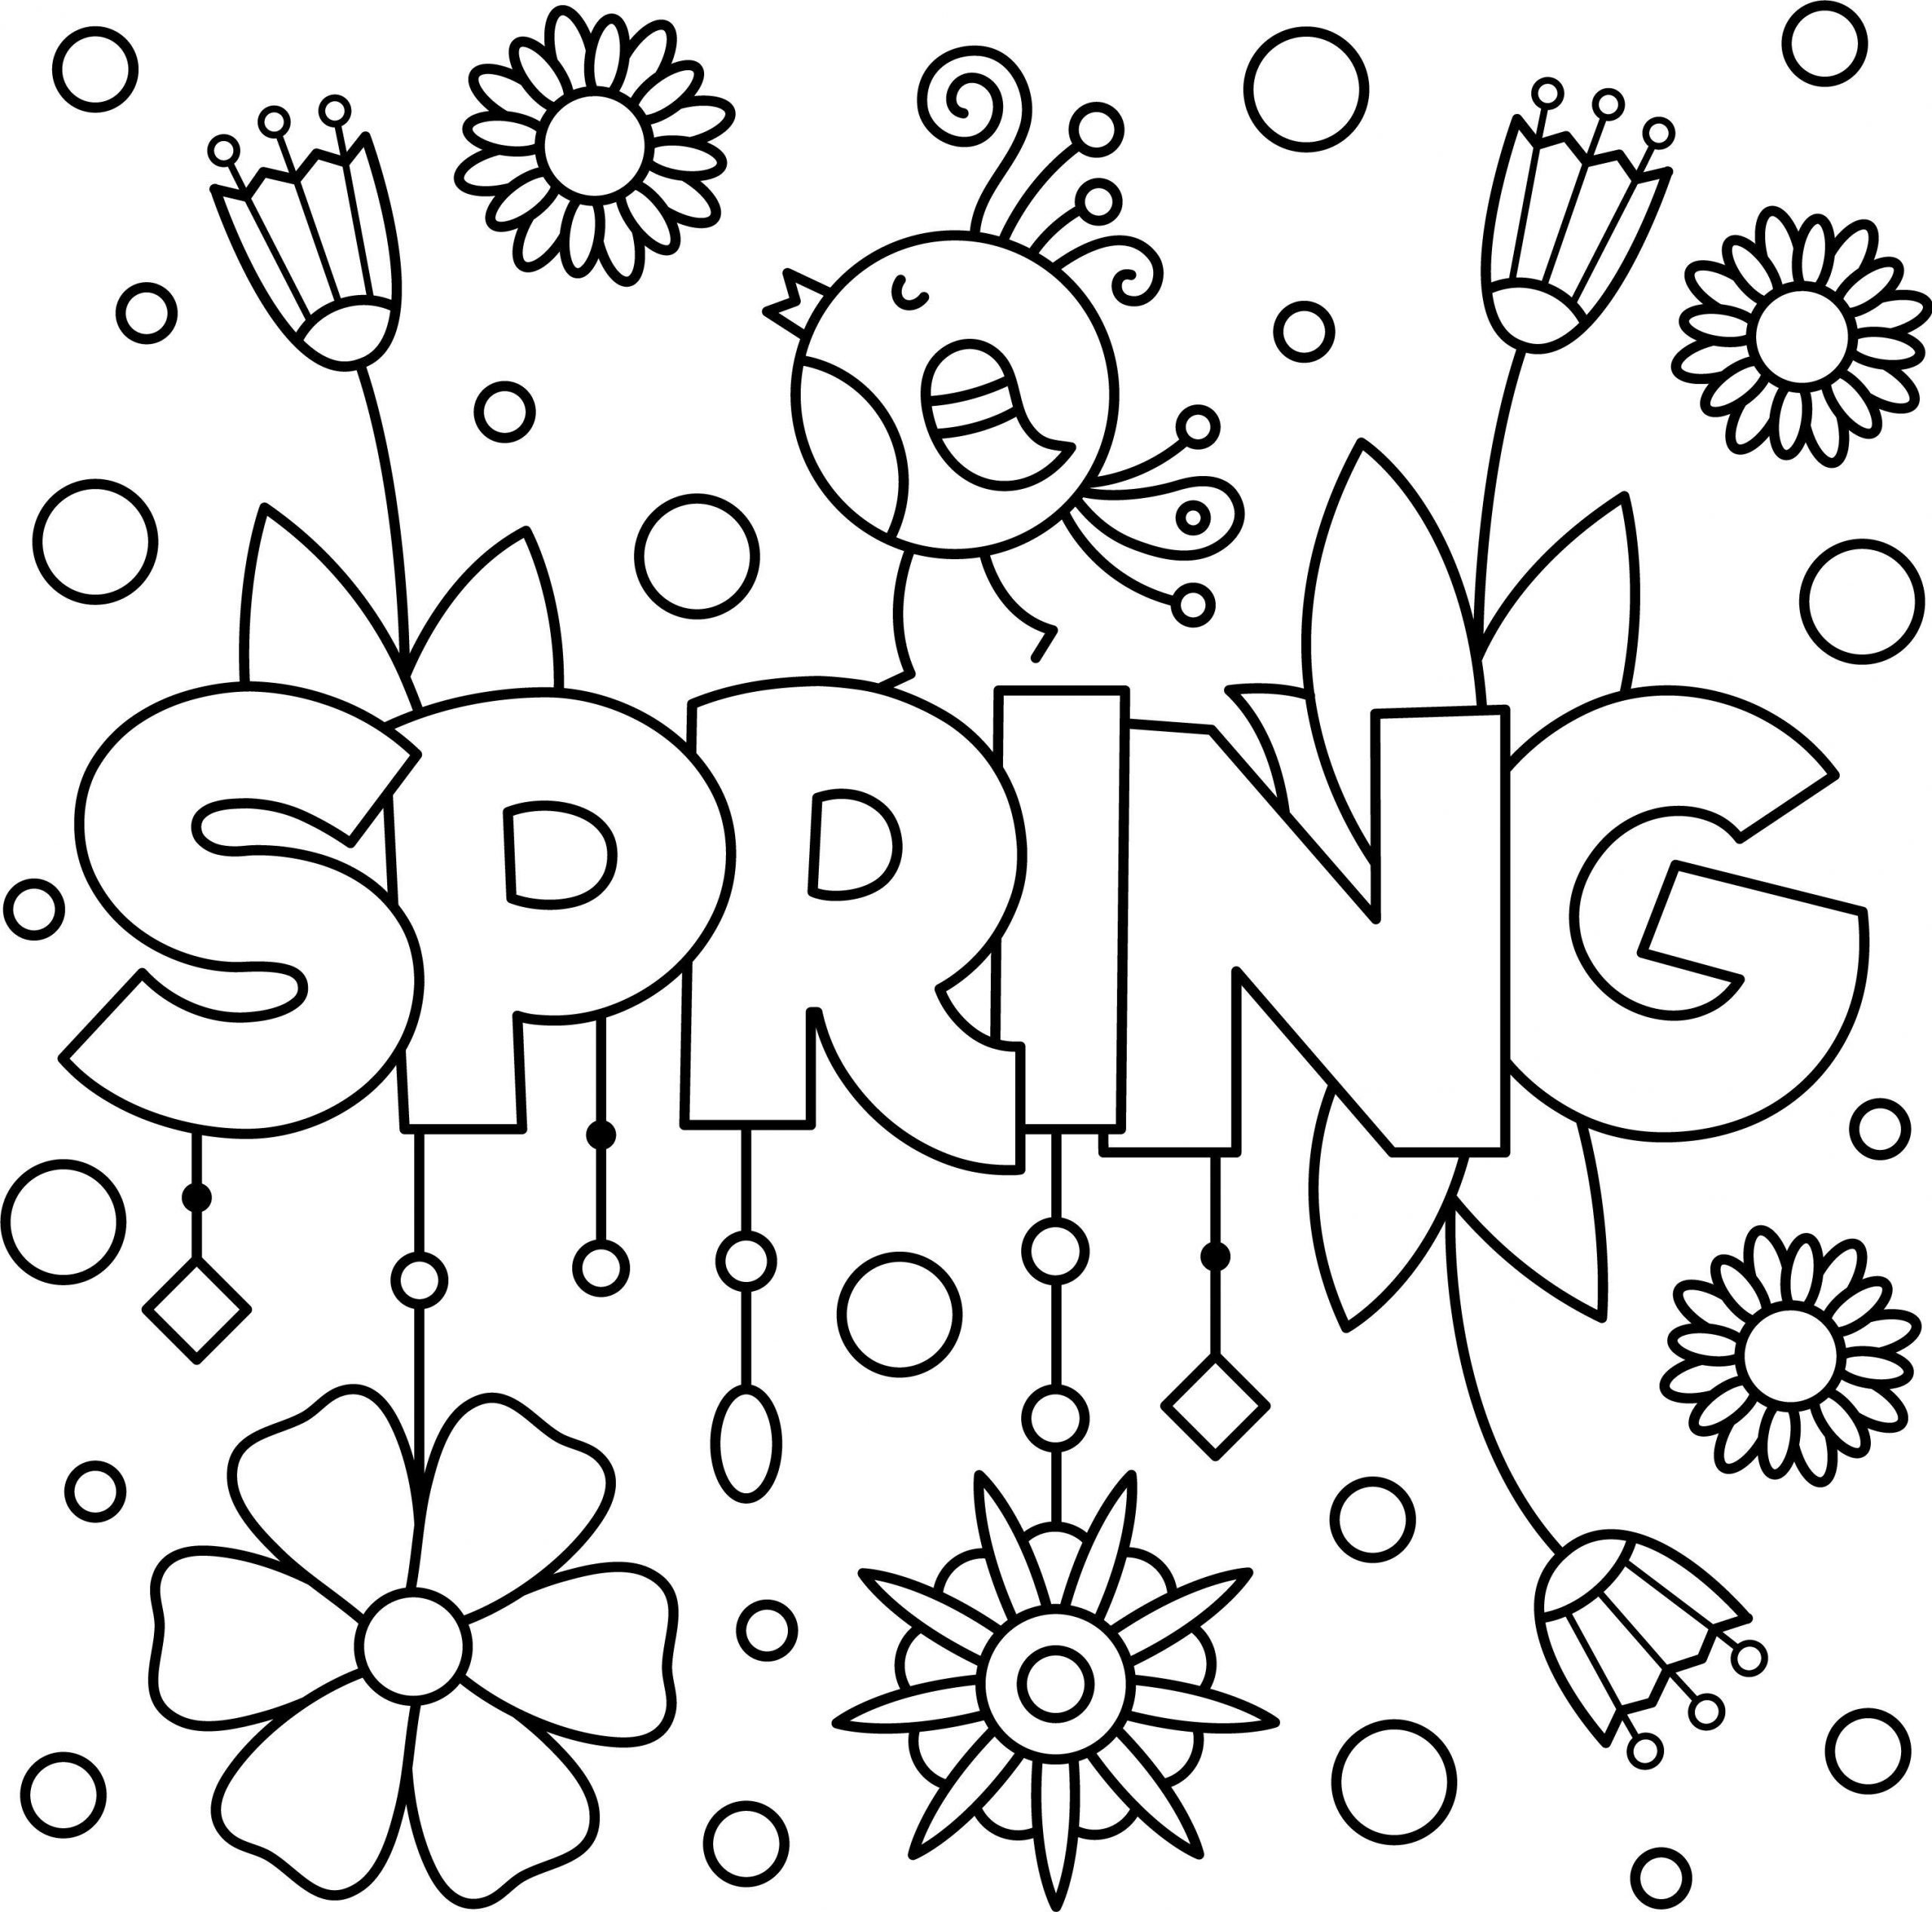 Election Day Worksheets Springtime Coloring Pages for toddlers Spring Worksheets